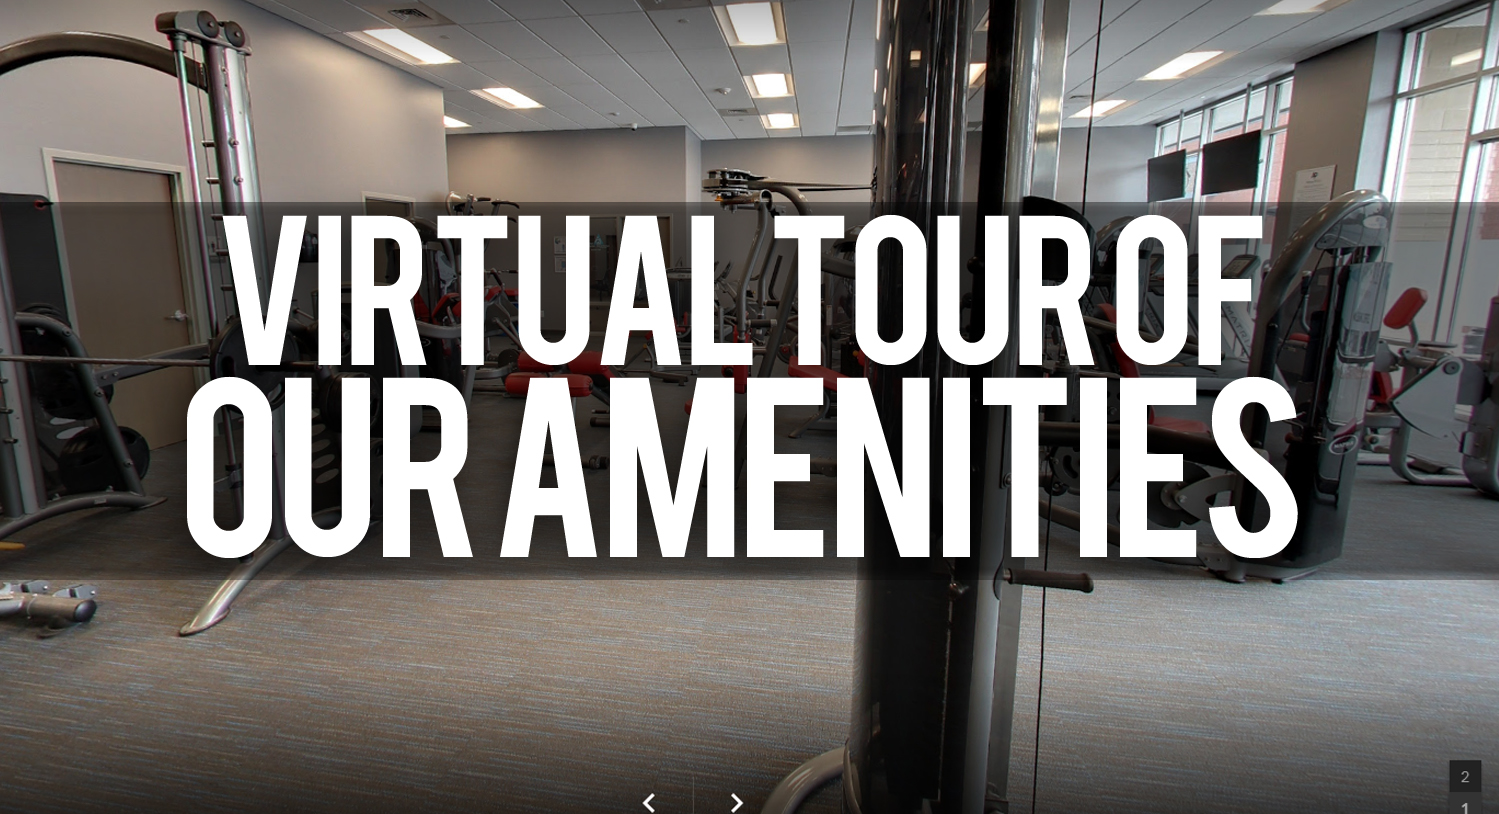 Take a Google Tour of Arena Place Apartments